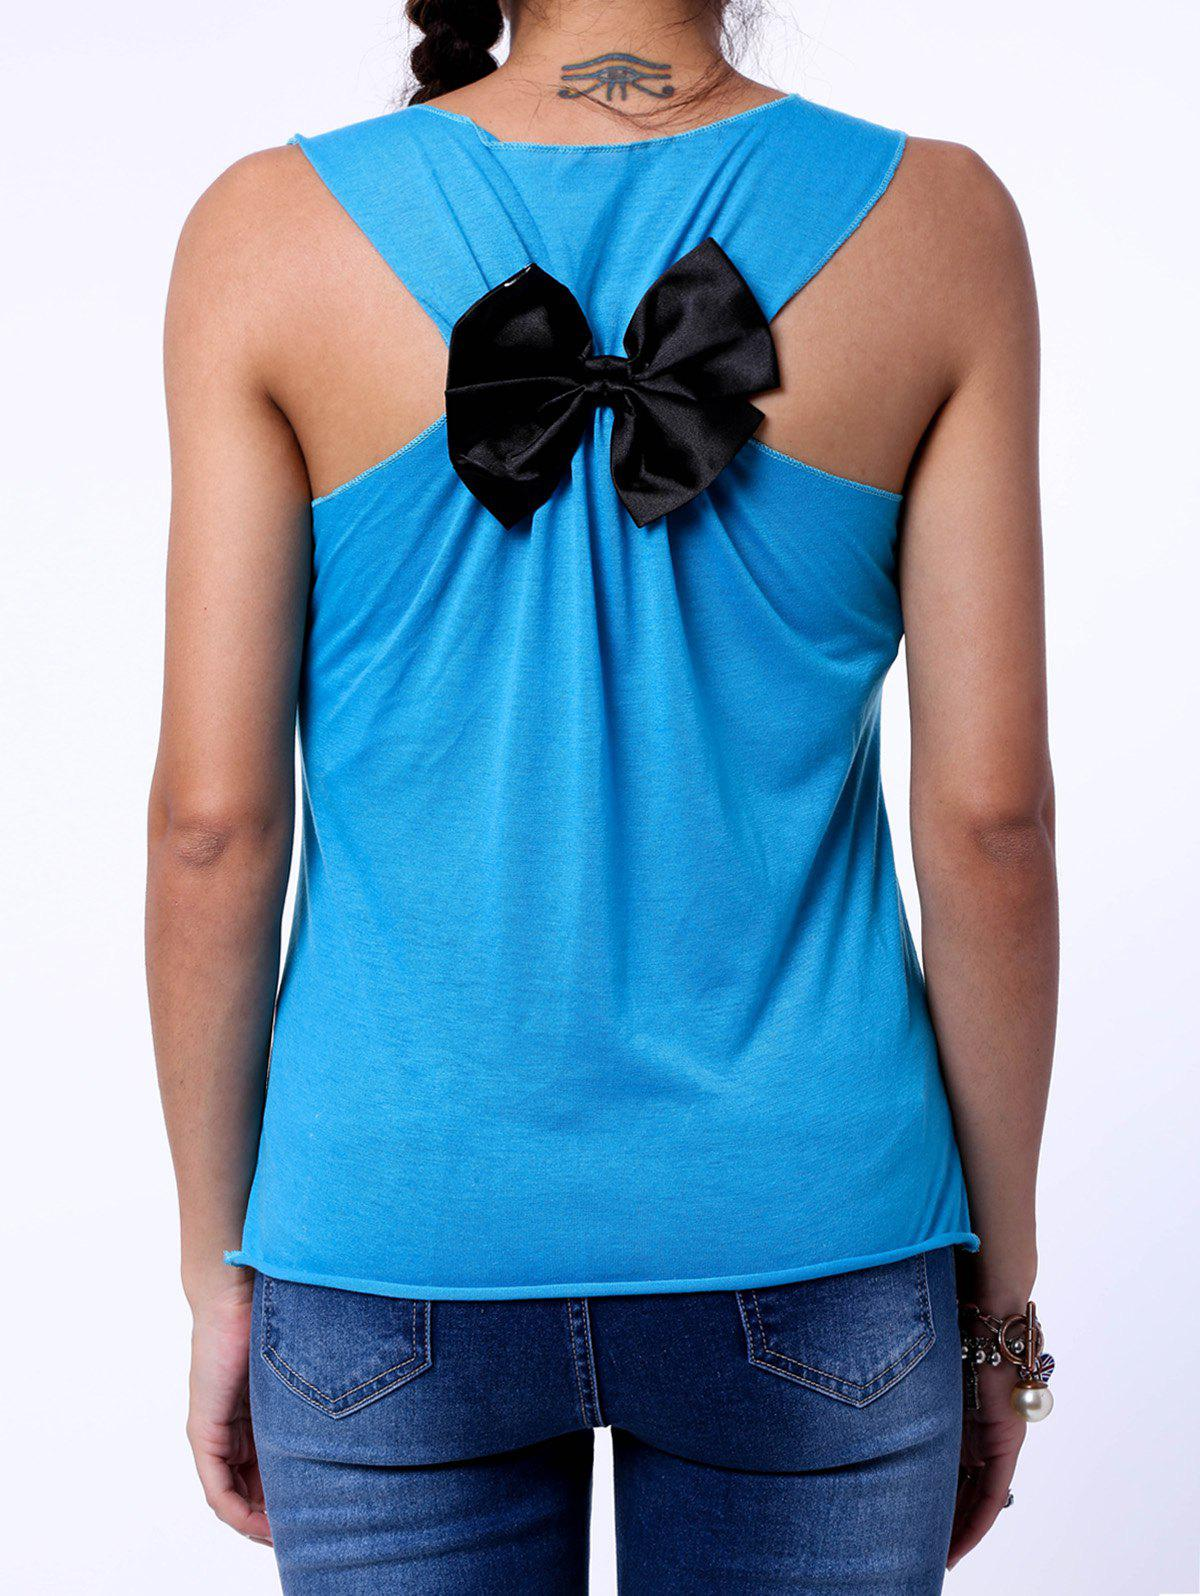 Sweet Back Bowknot Design Letter Print Tank Top For Women - LAKE BLUE S